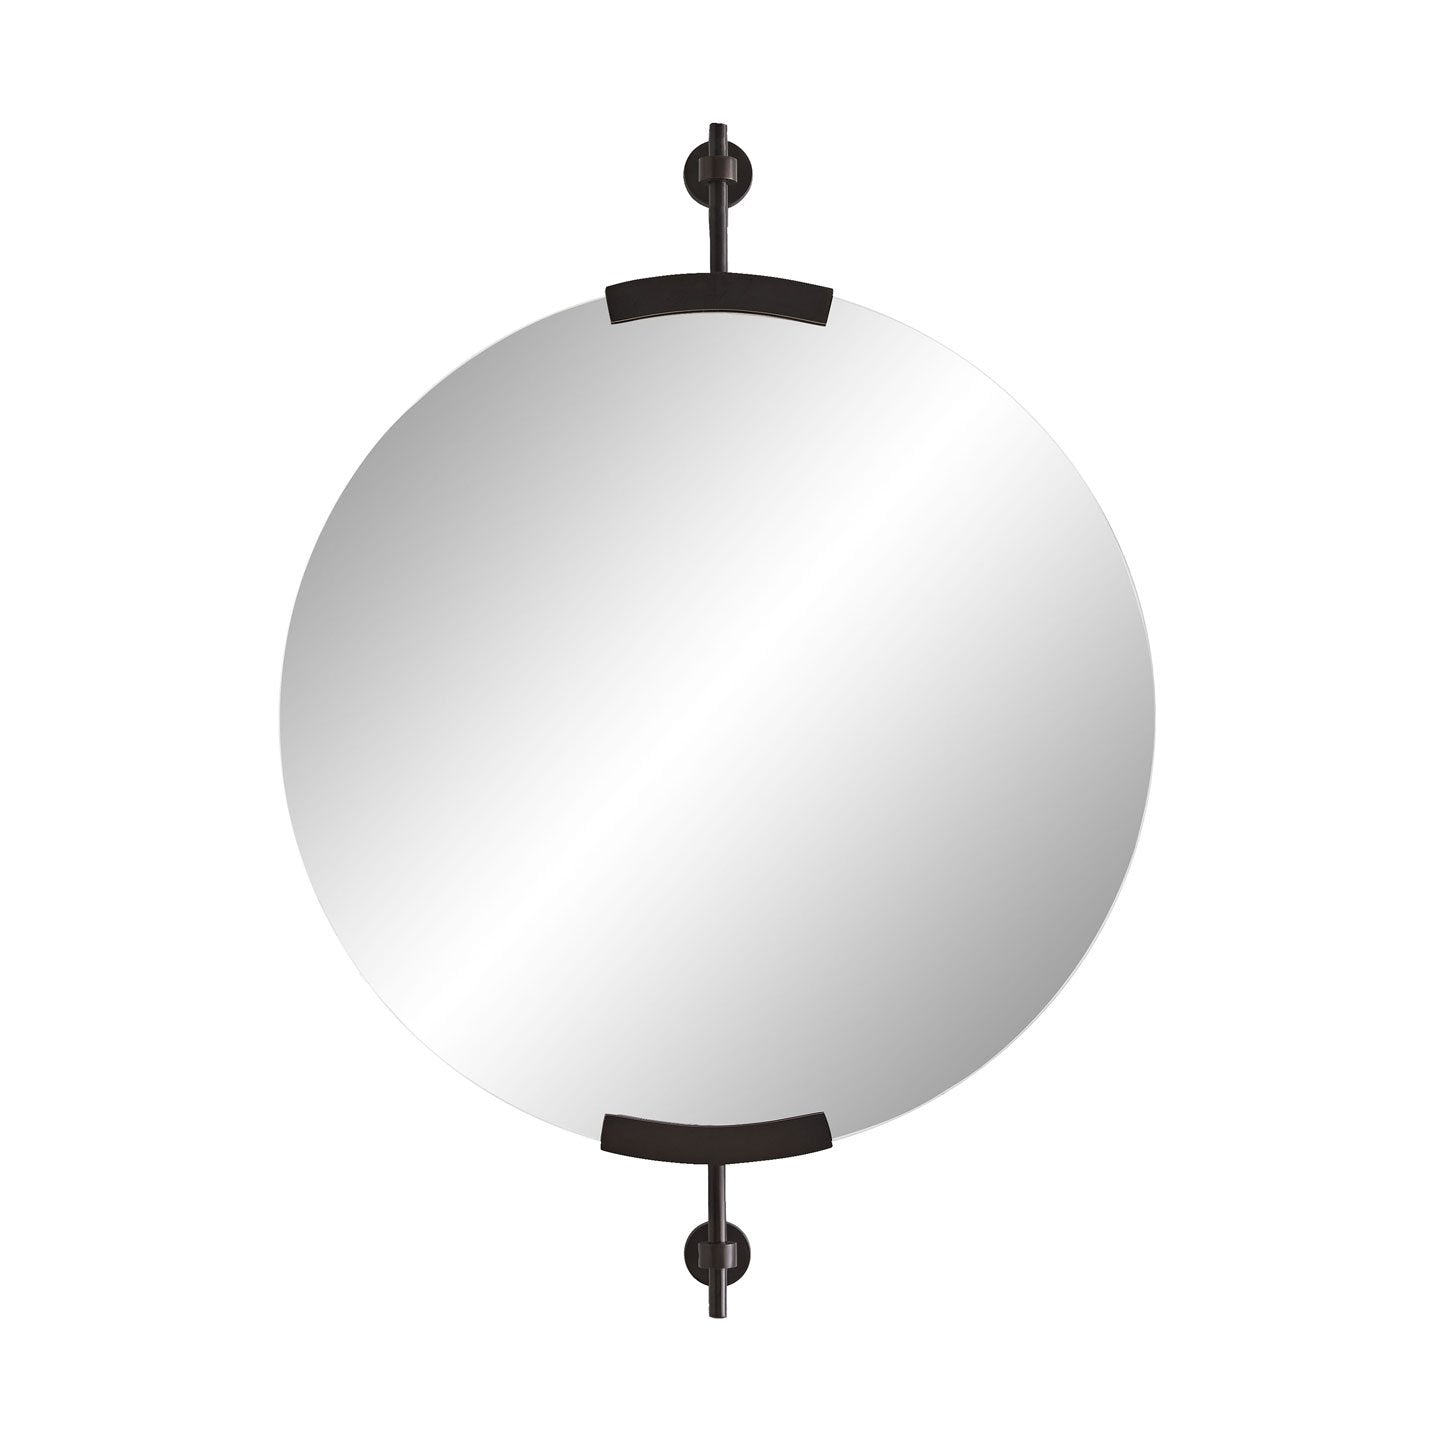 Madden Small Round Mirror - Bronze